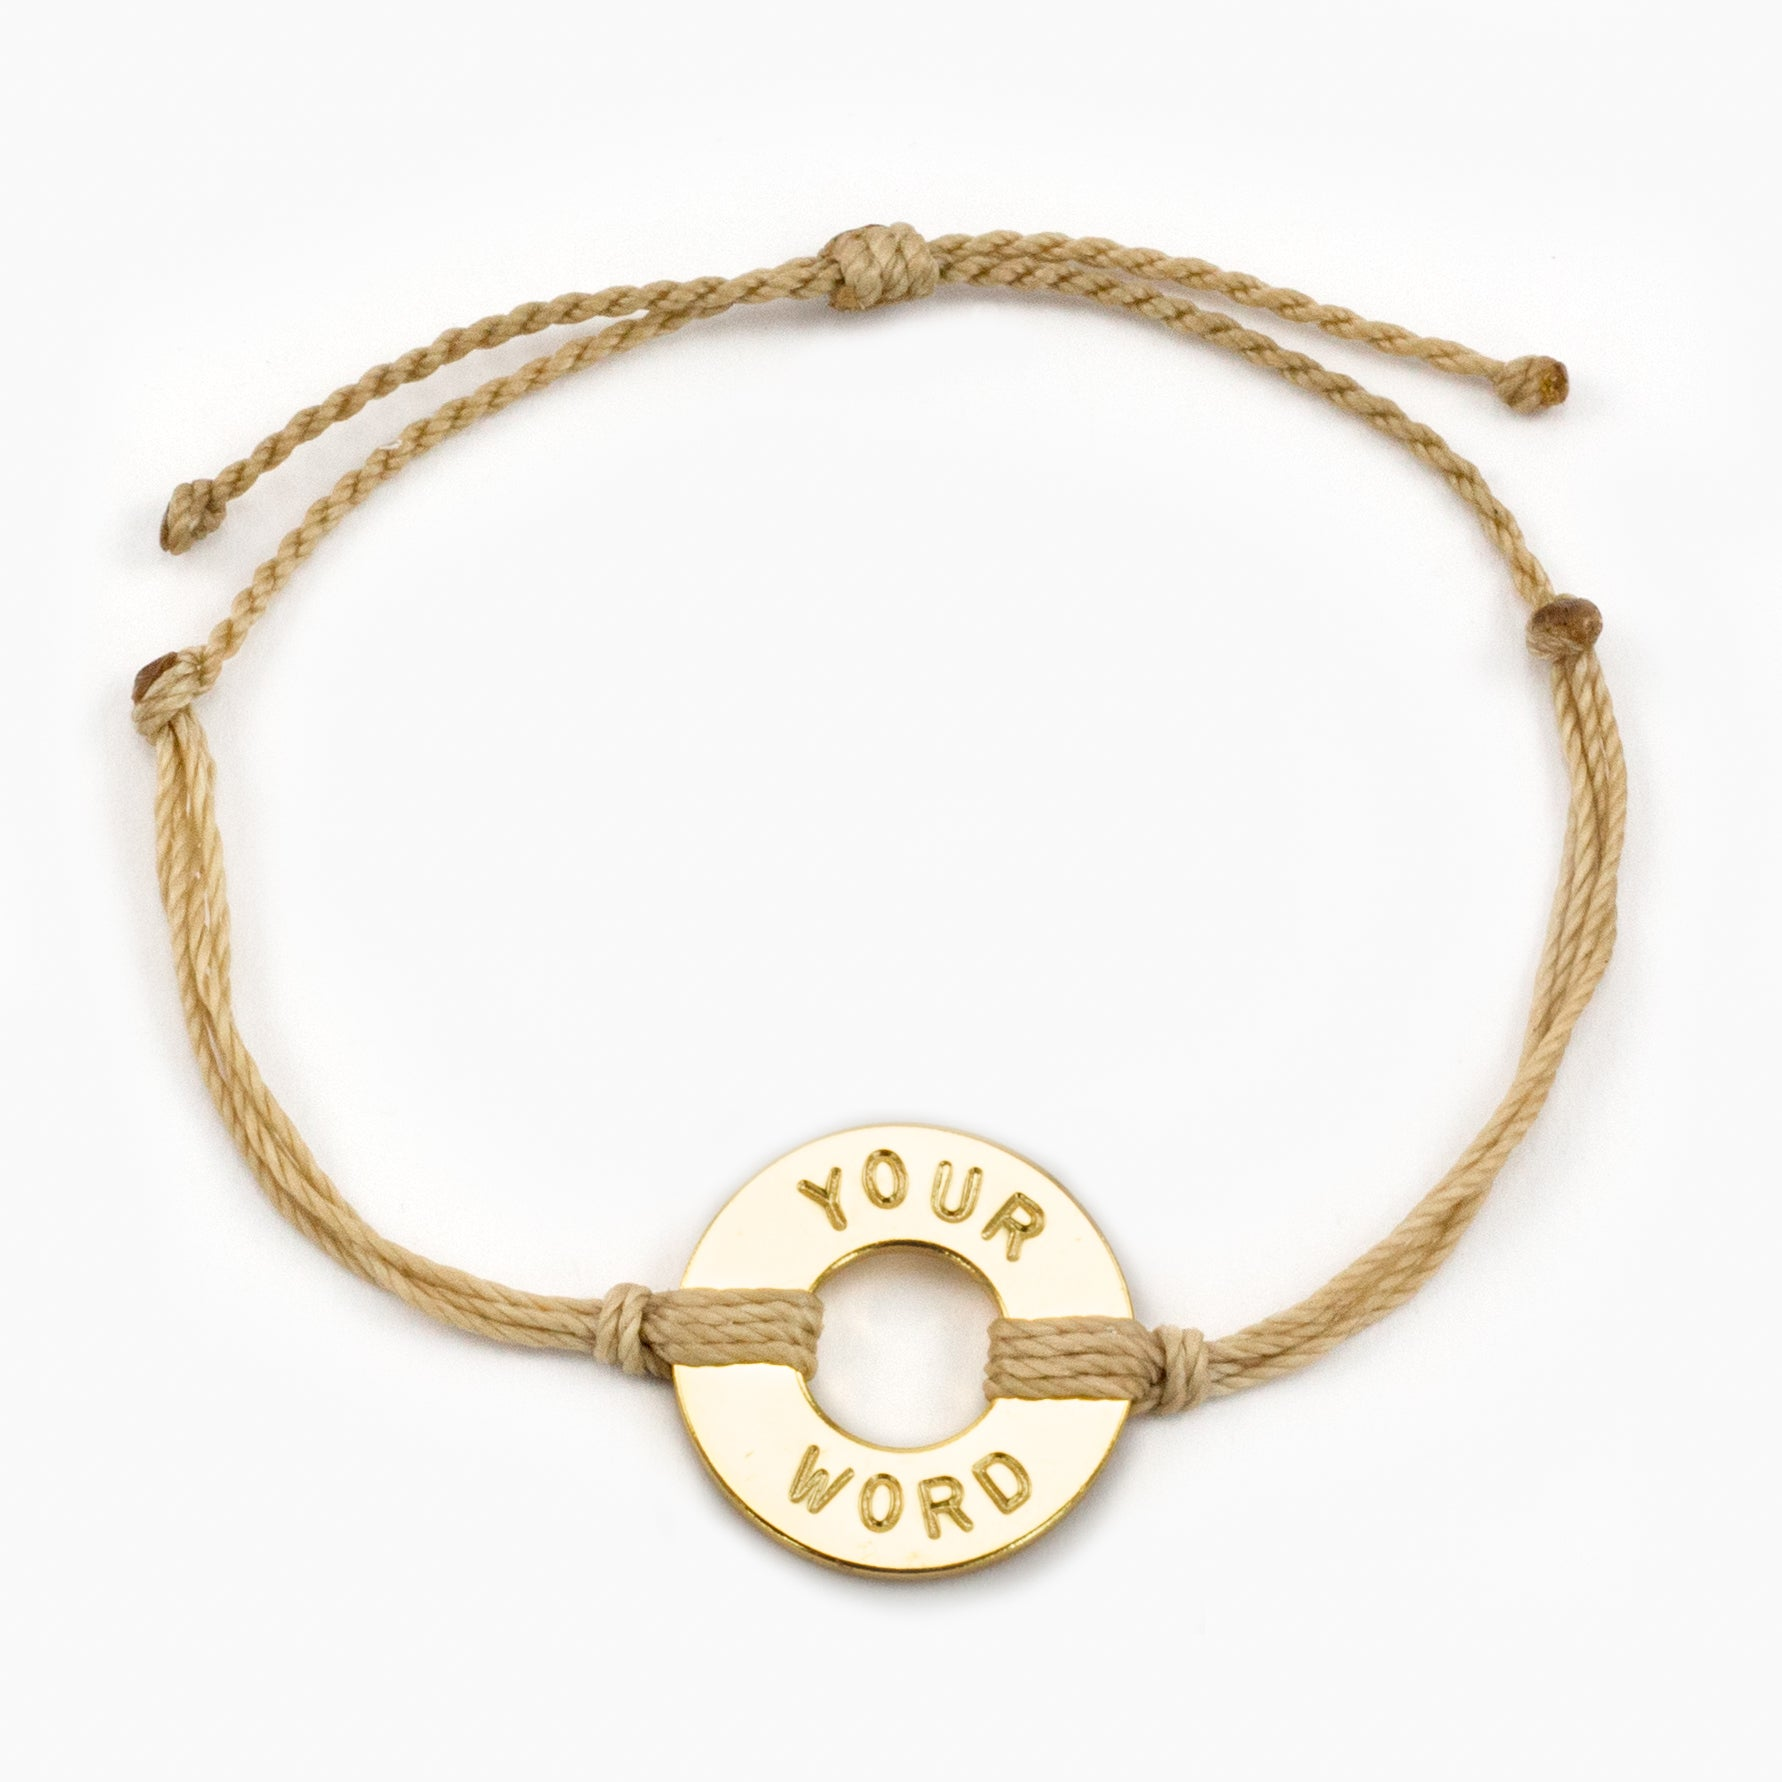 MyIntent Custom Twist Bracelet Cream color String with Gold Token